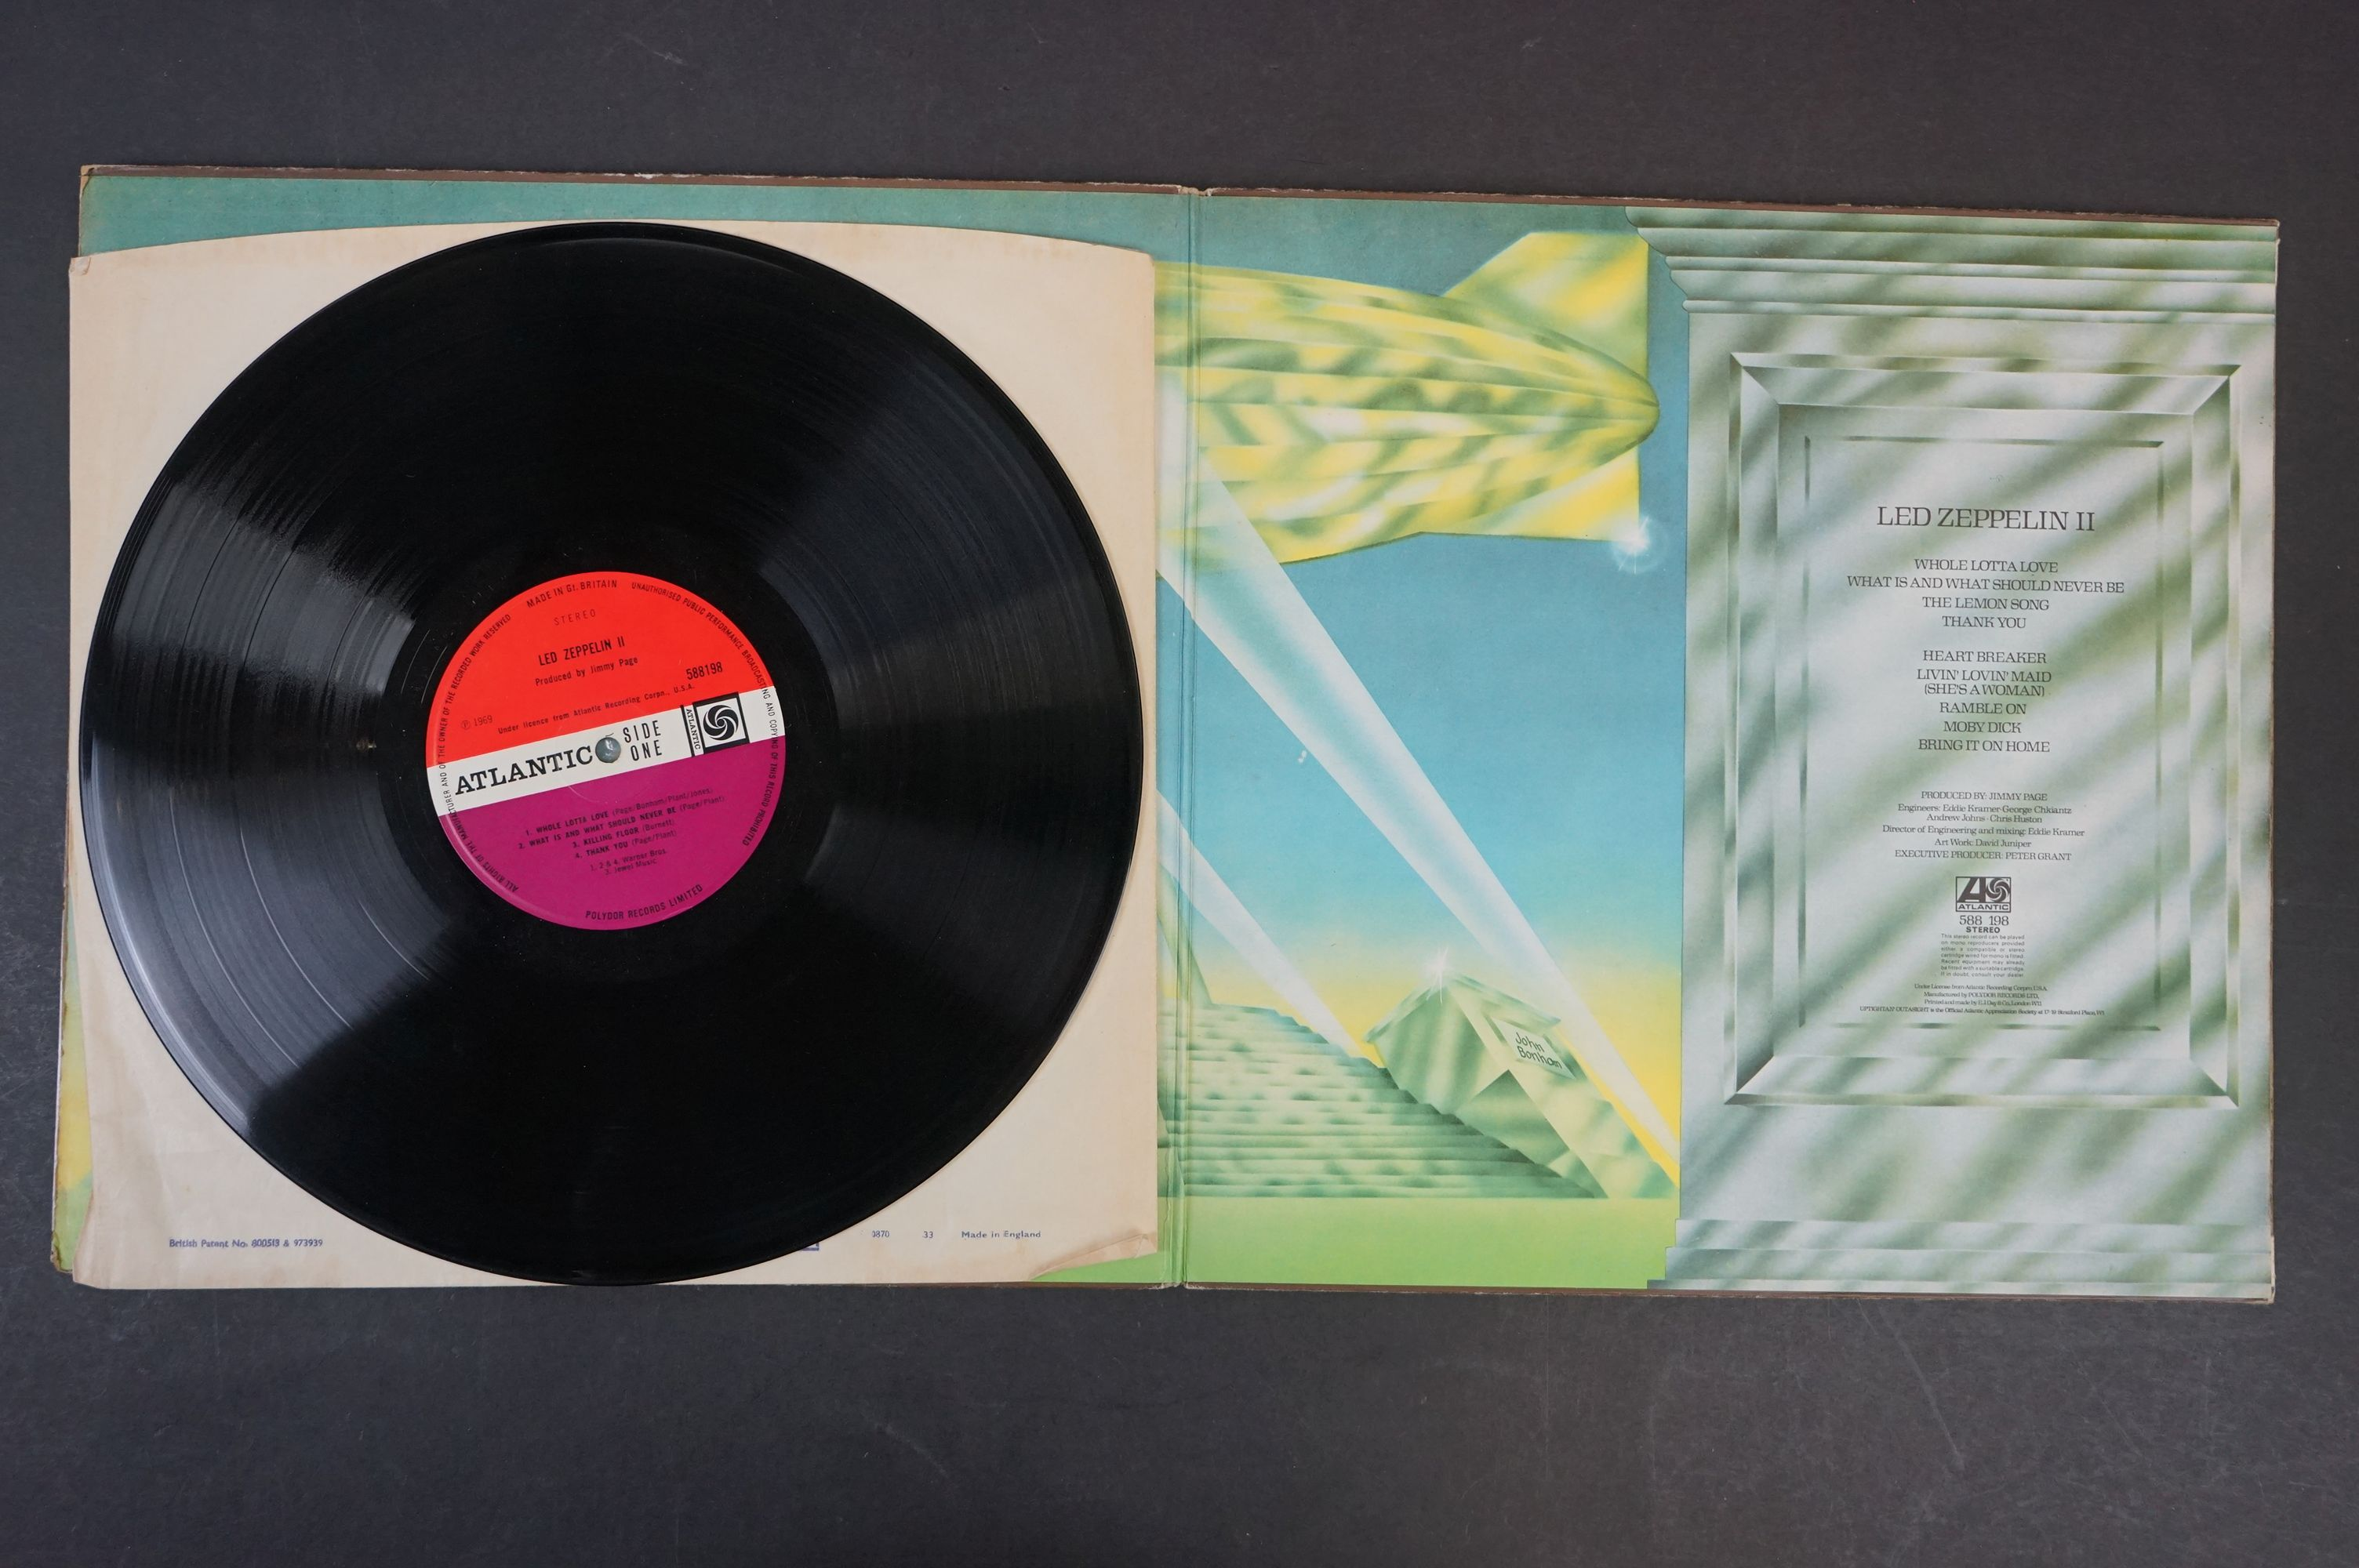 Vinyl - Six Led Zeppelin LPs to include In Through the Outdoor (cover D) SSK59410, Coda 790051, 2 - Image 4 of 17